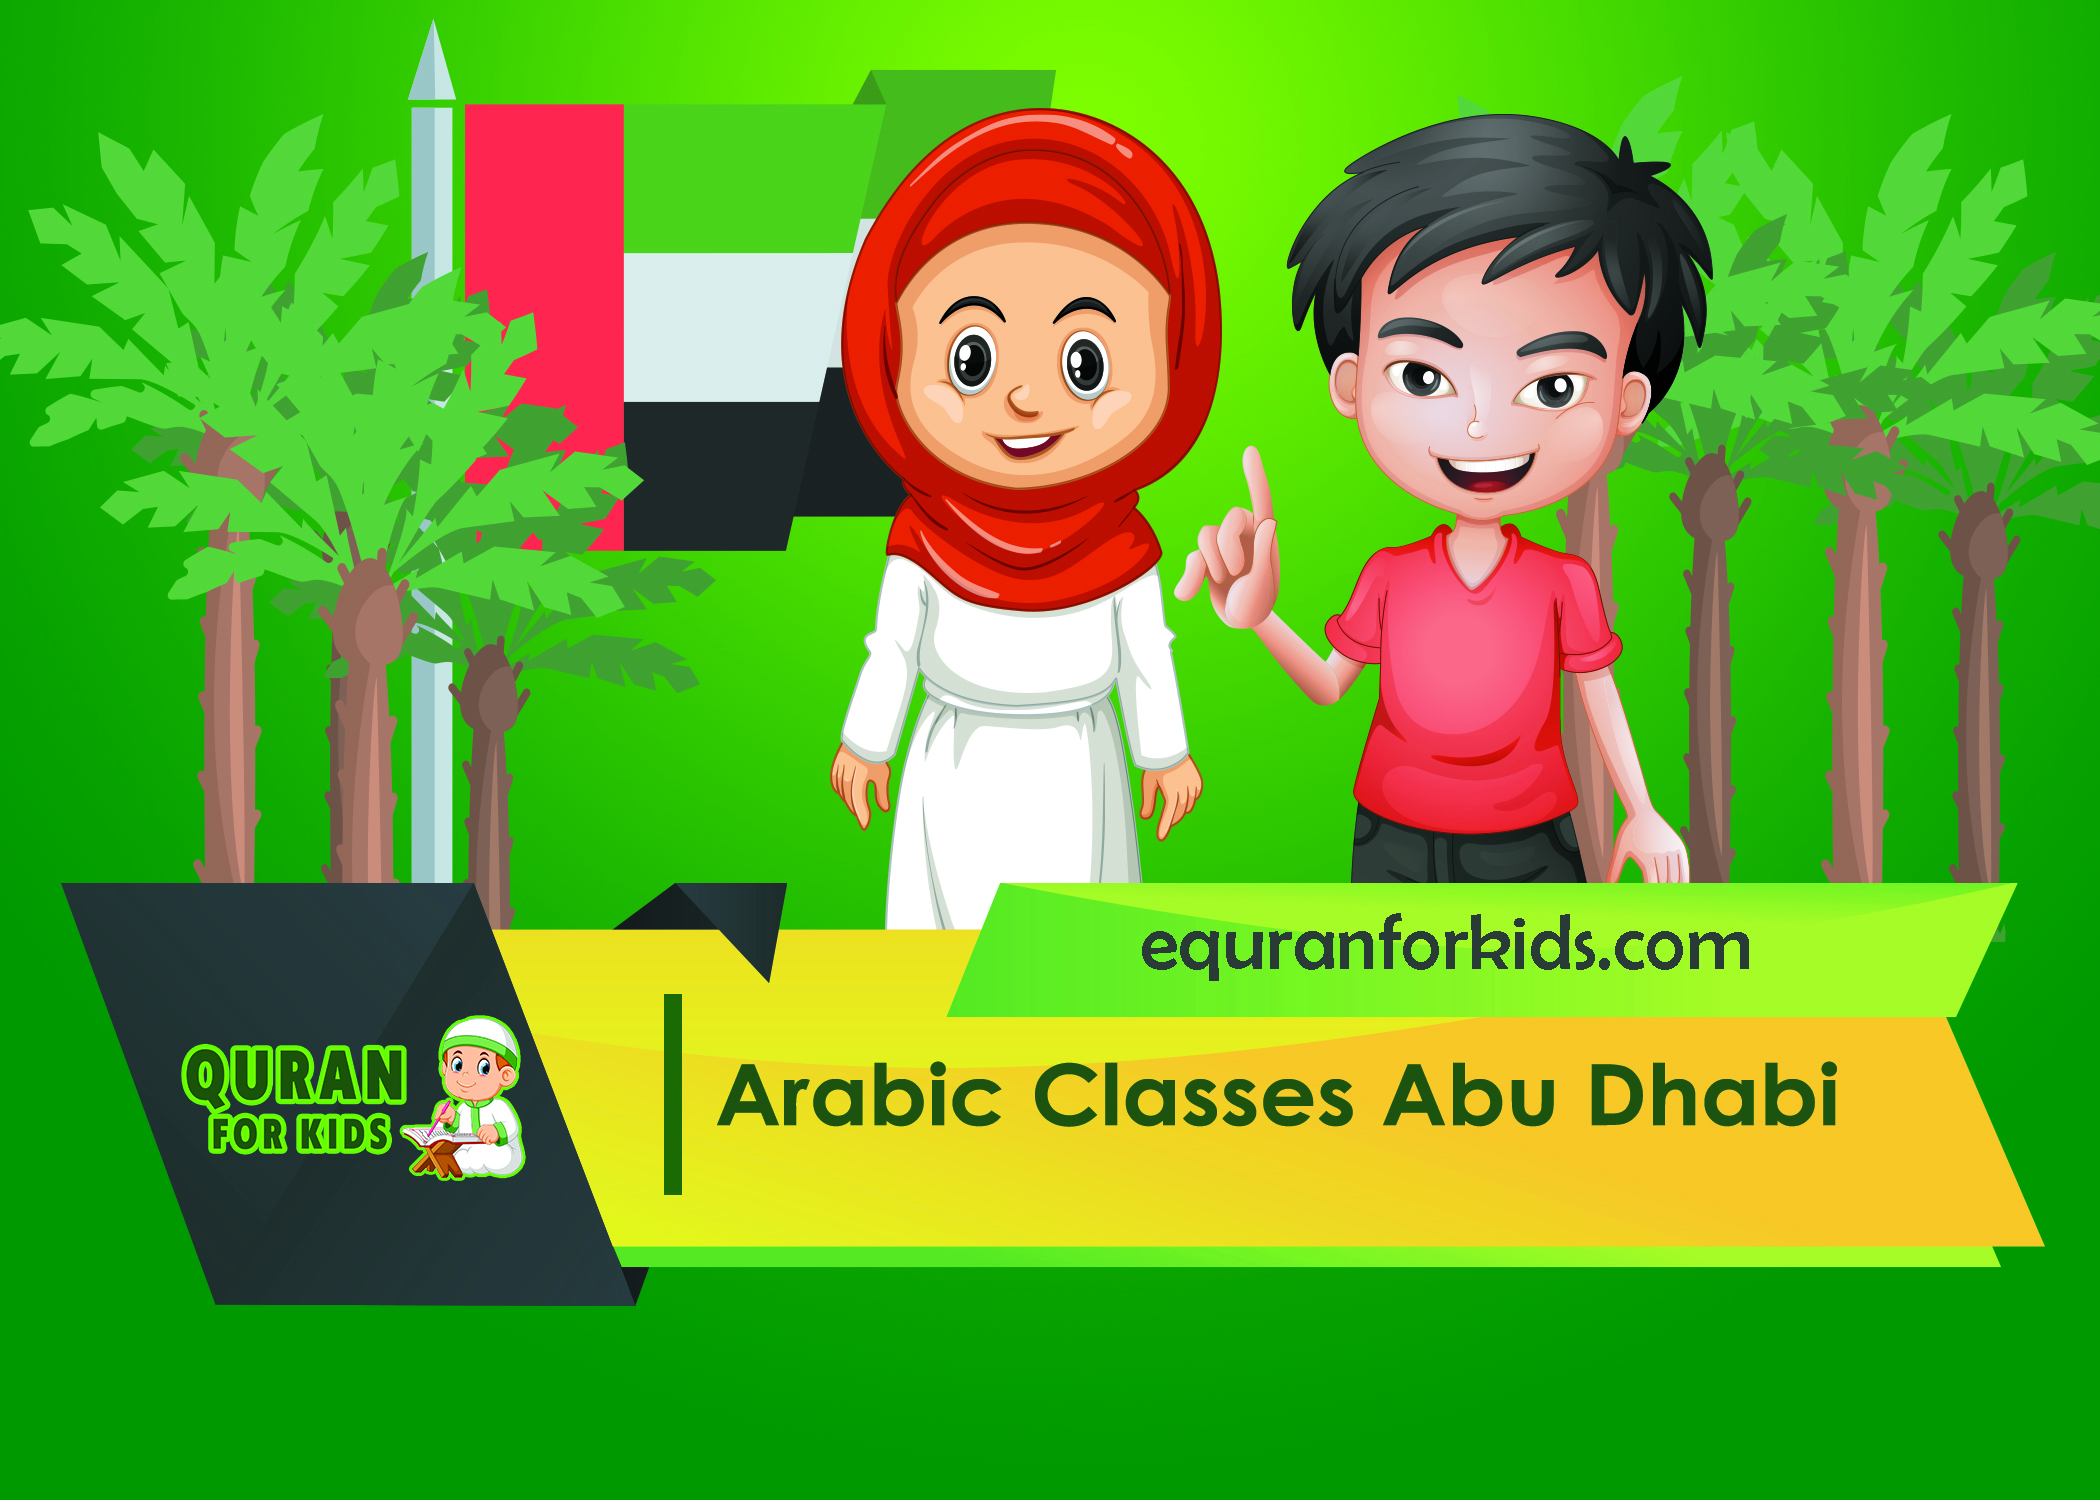 Arabic Classes Abu Dhabi